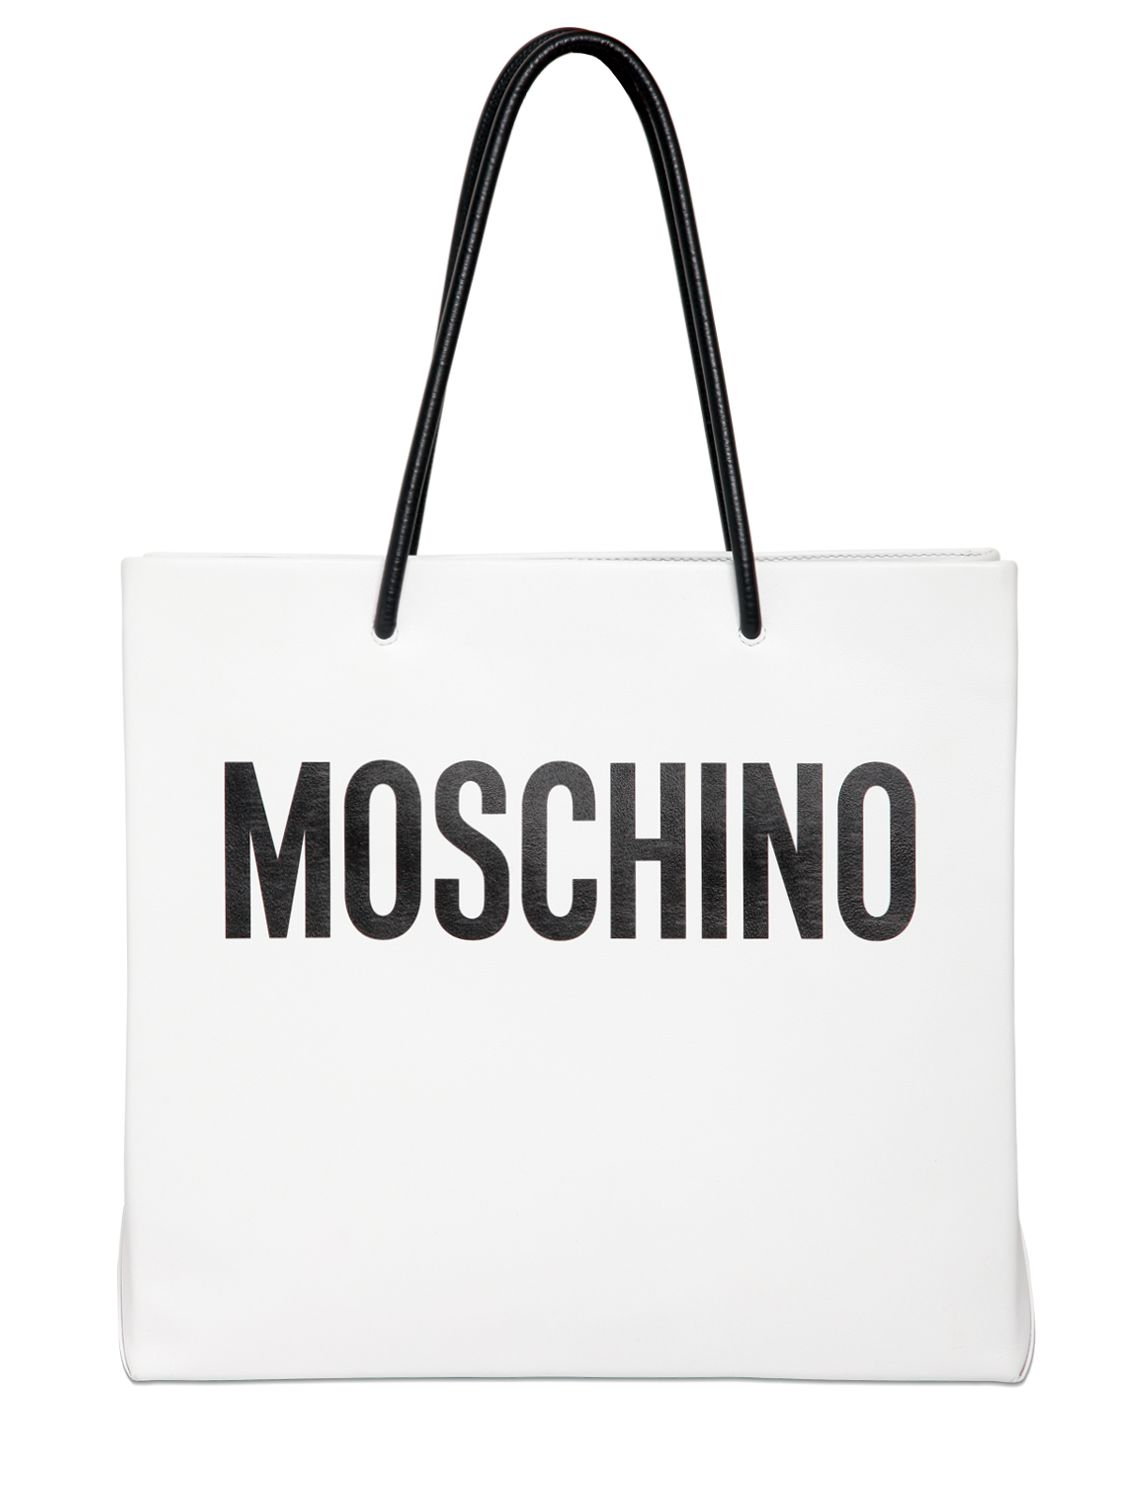 Moschino Moshino Shopping Leather Tote Bag In White White